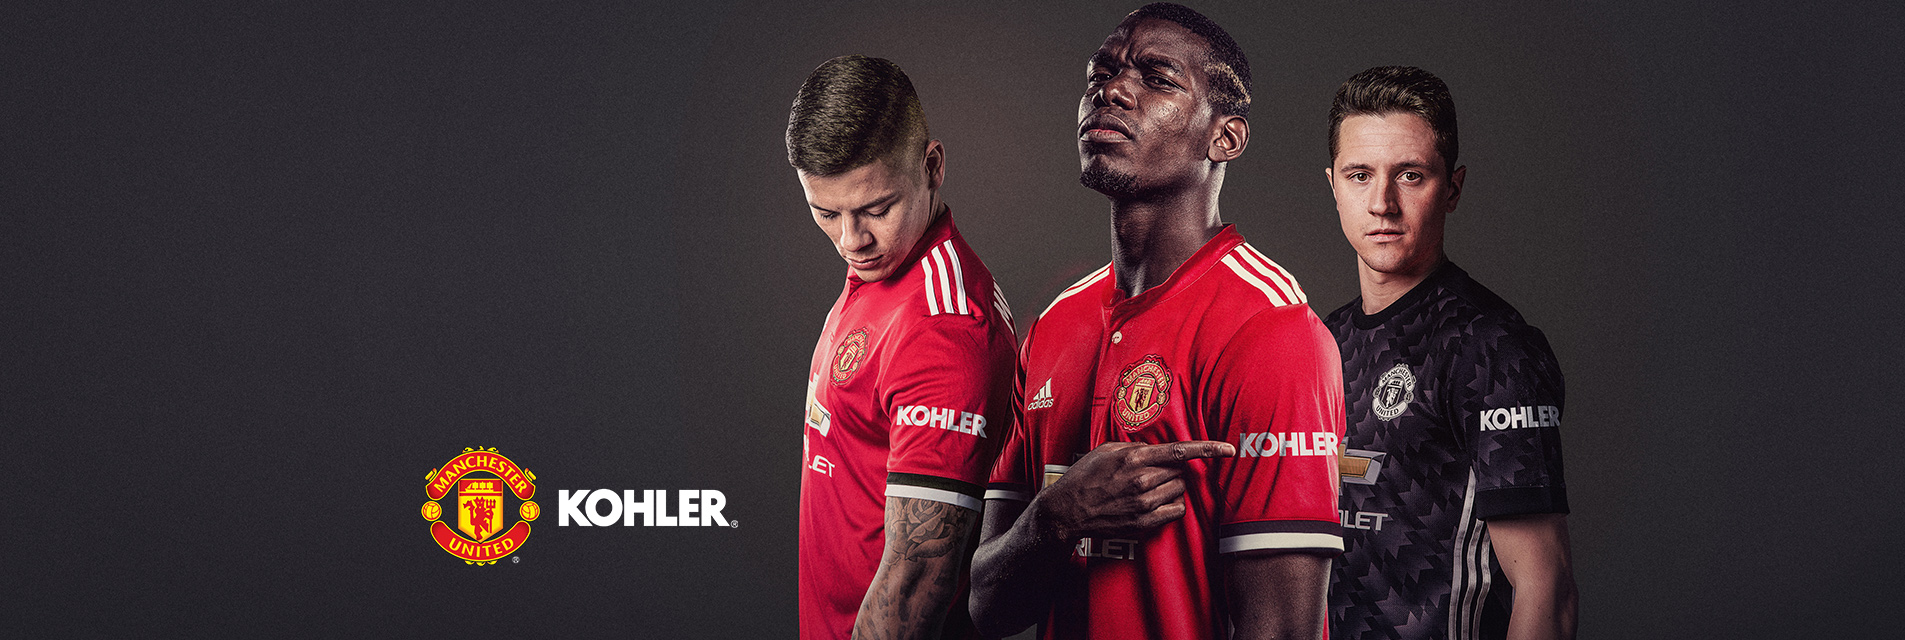 Introducing Kohler United